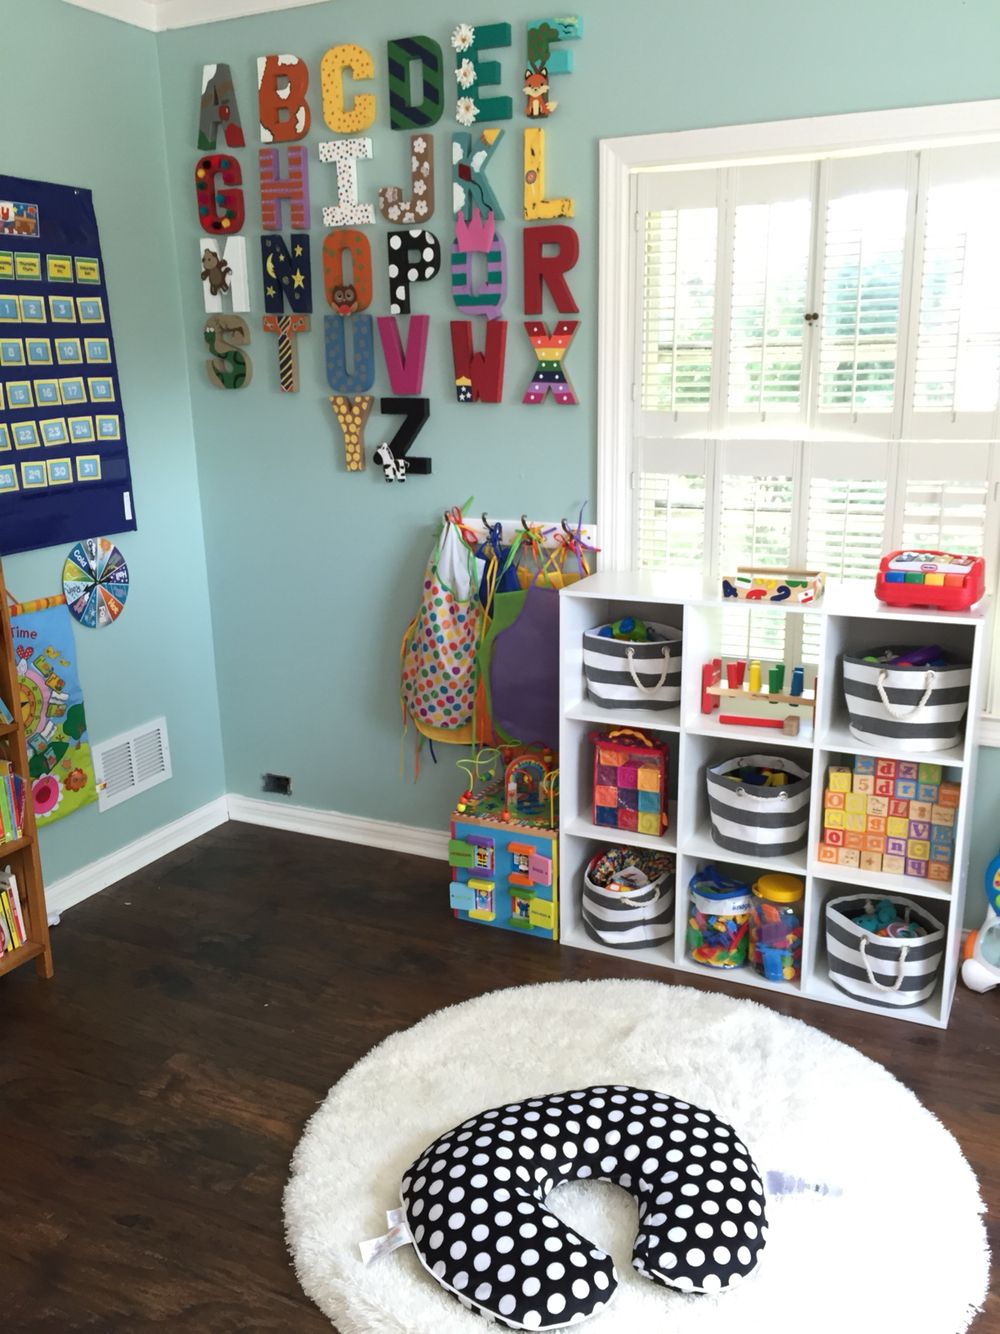 In home daycare pinteres Dacare room designs